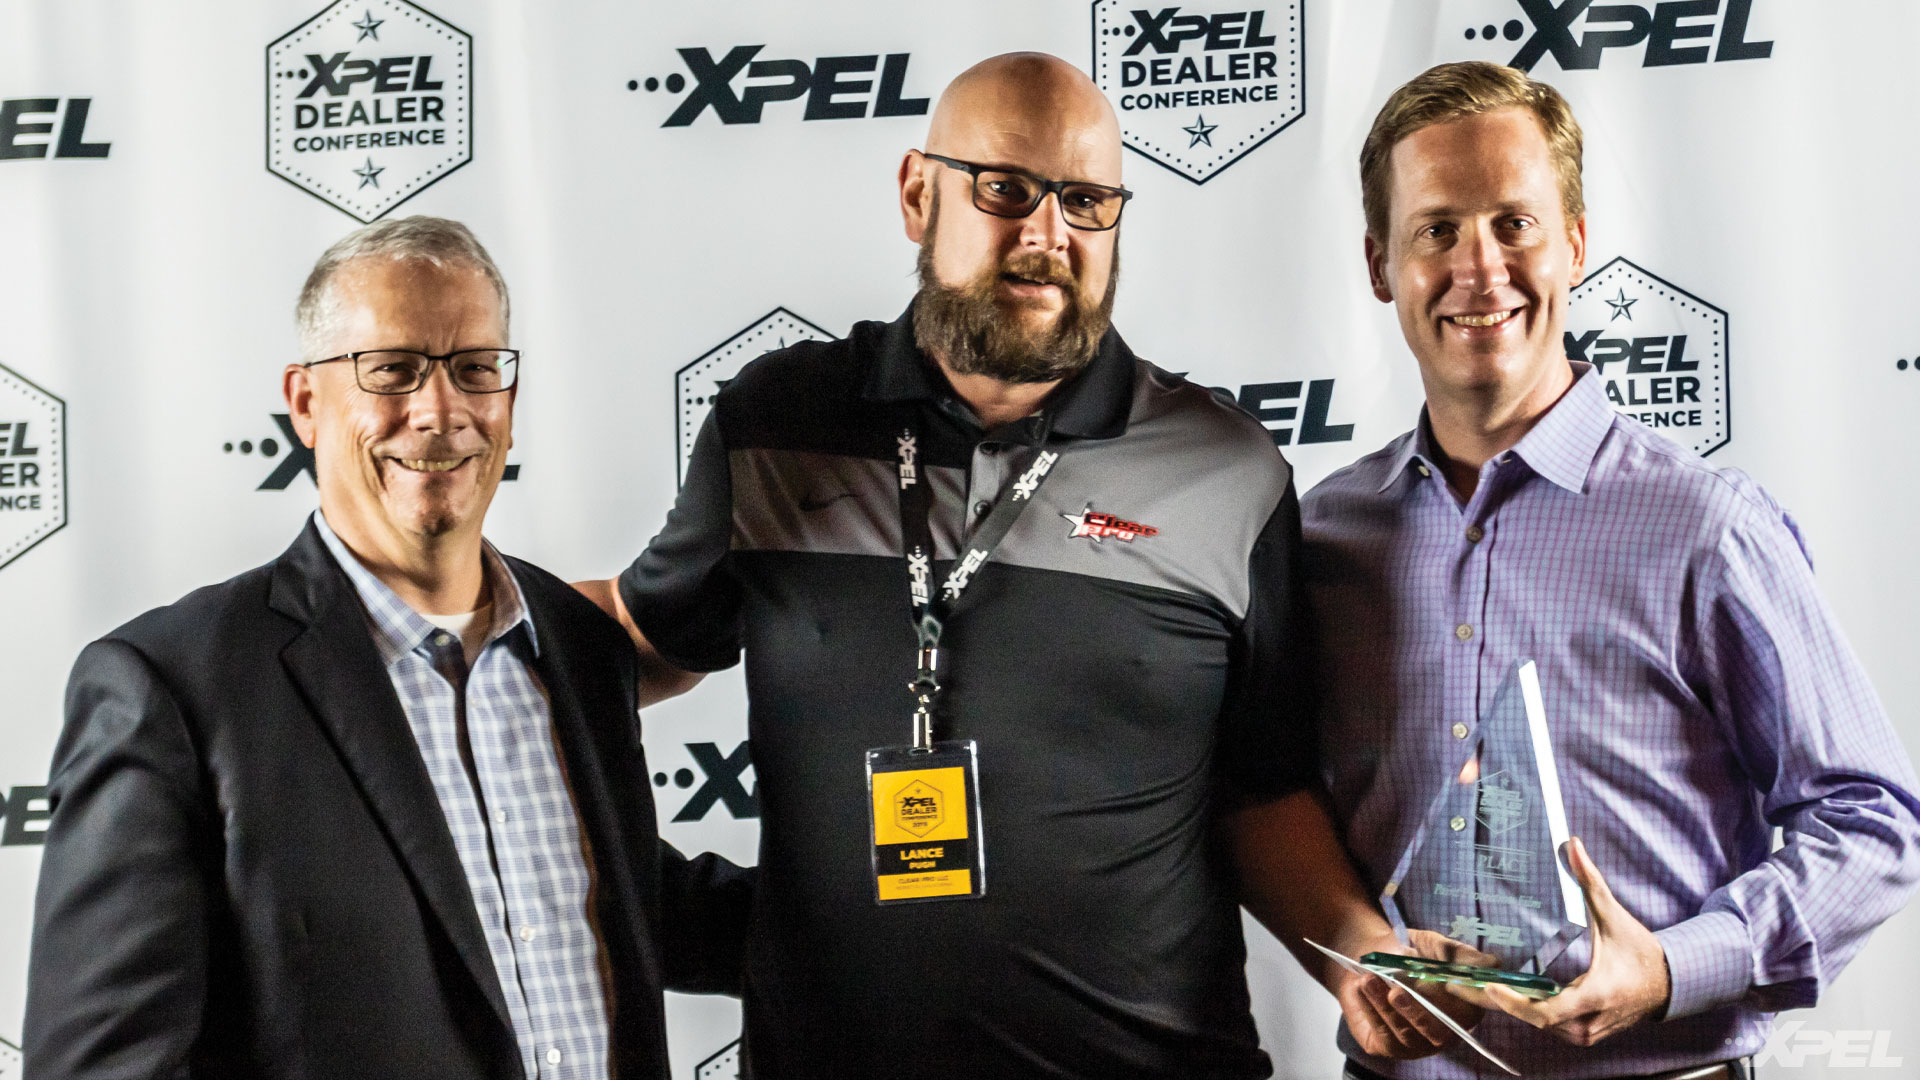 XPEL Dealer Conference 3rd Place Paint Protection Film Winner: Lance Pugh of Clear Pro